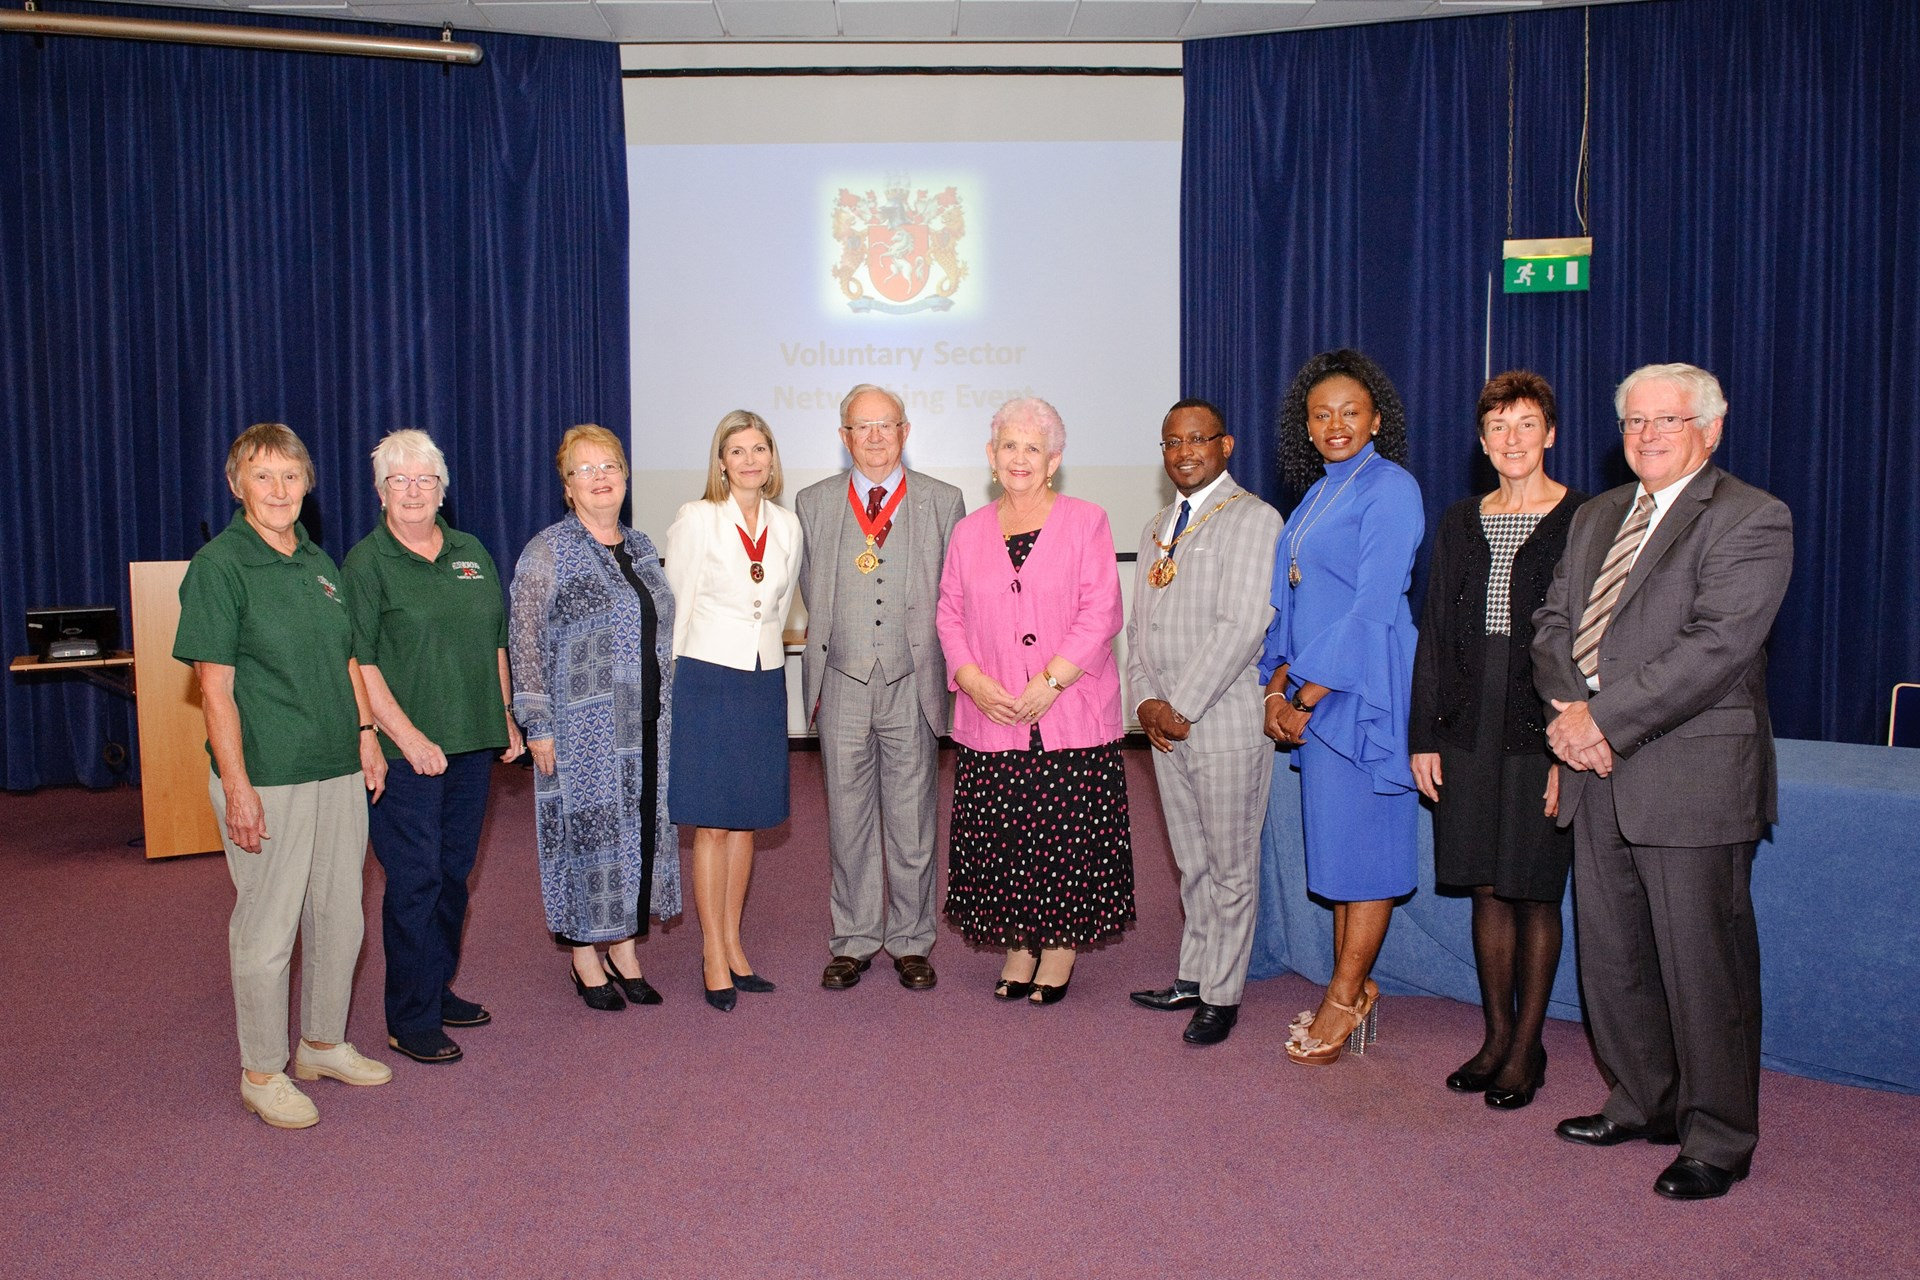 Launch of Kent Community Award Scheme